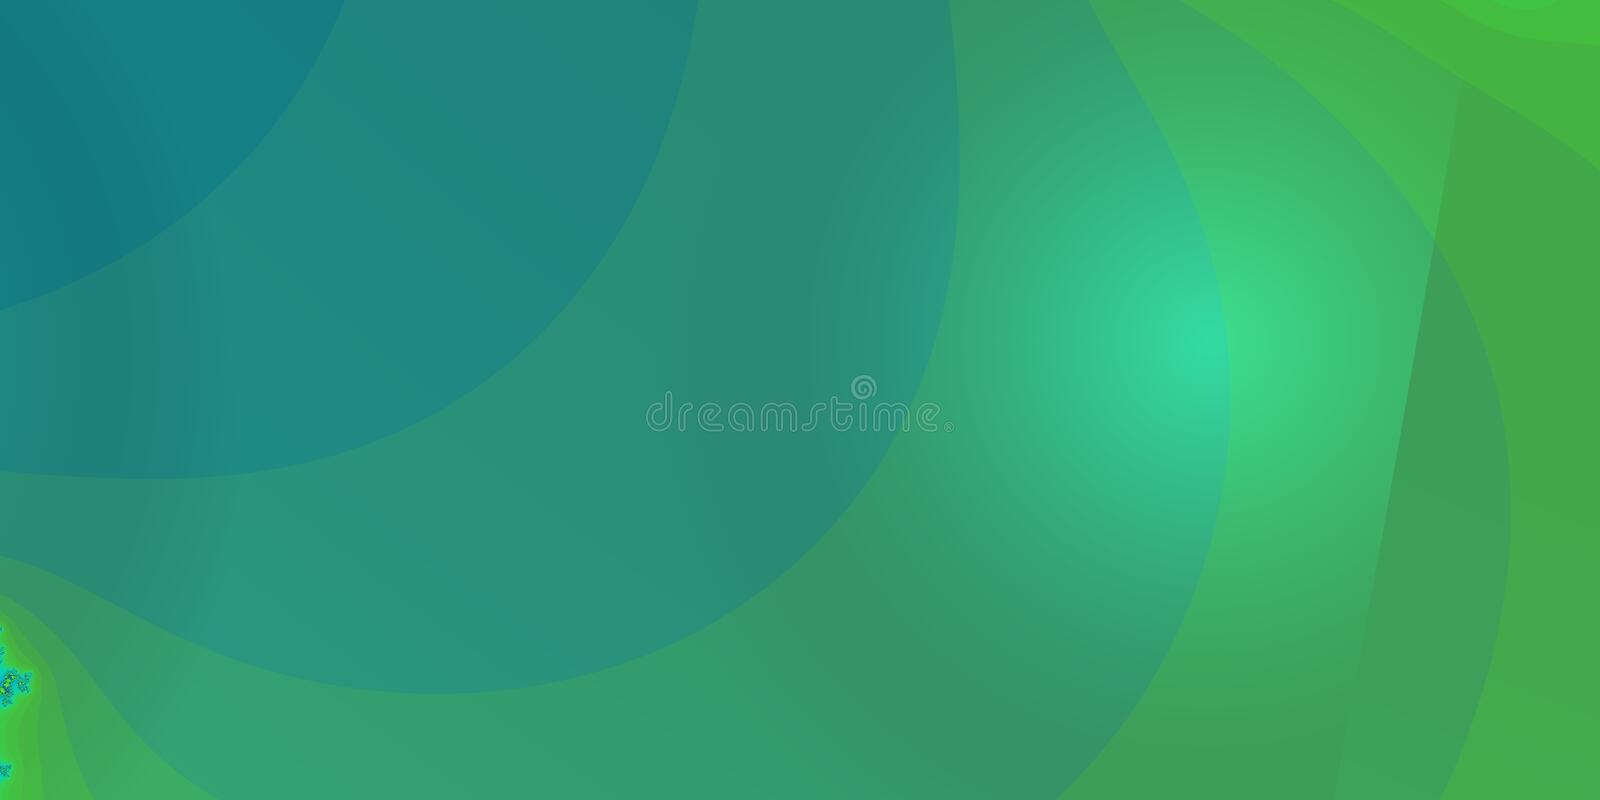 Download Retro Teal Green Background Stock Image - Image: 4652391